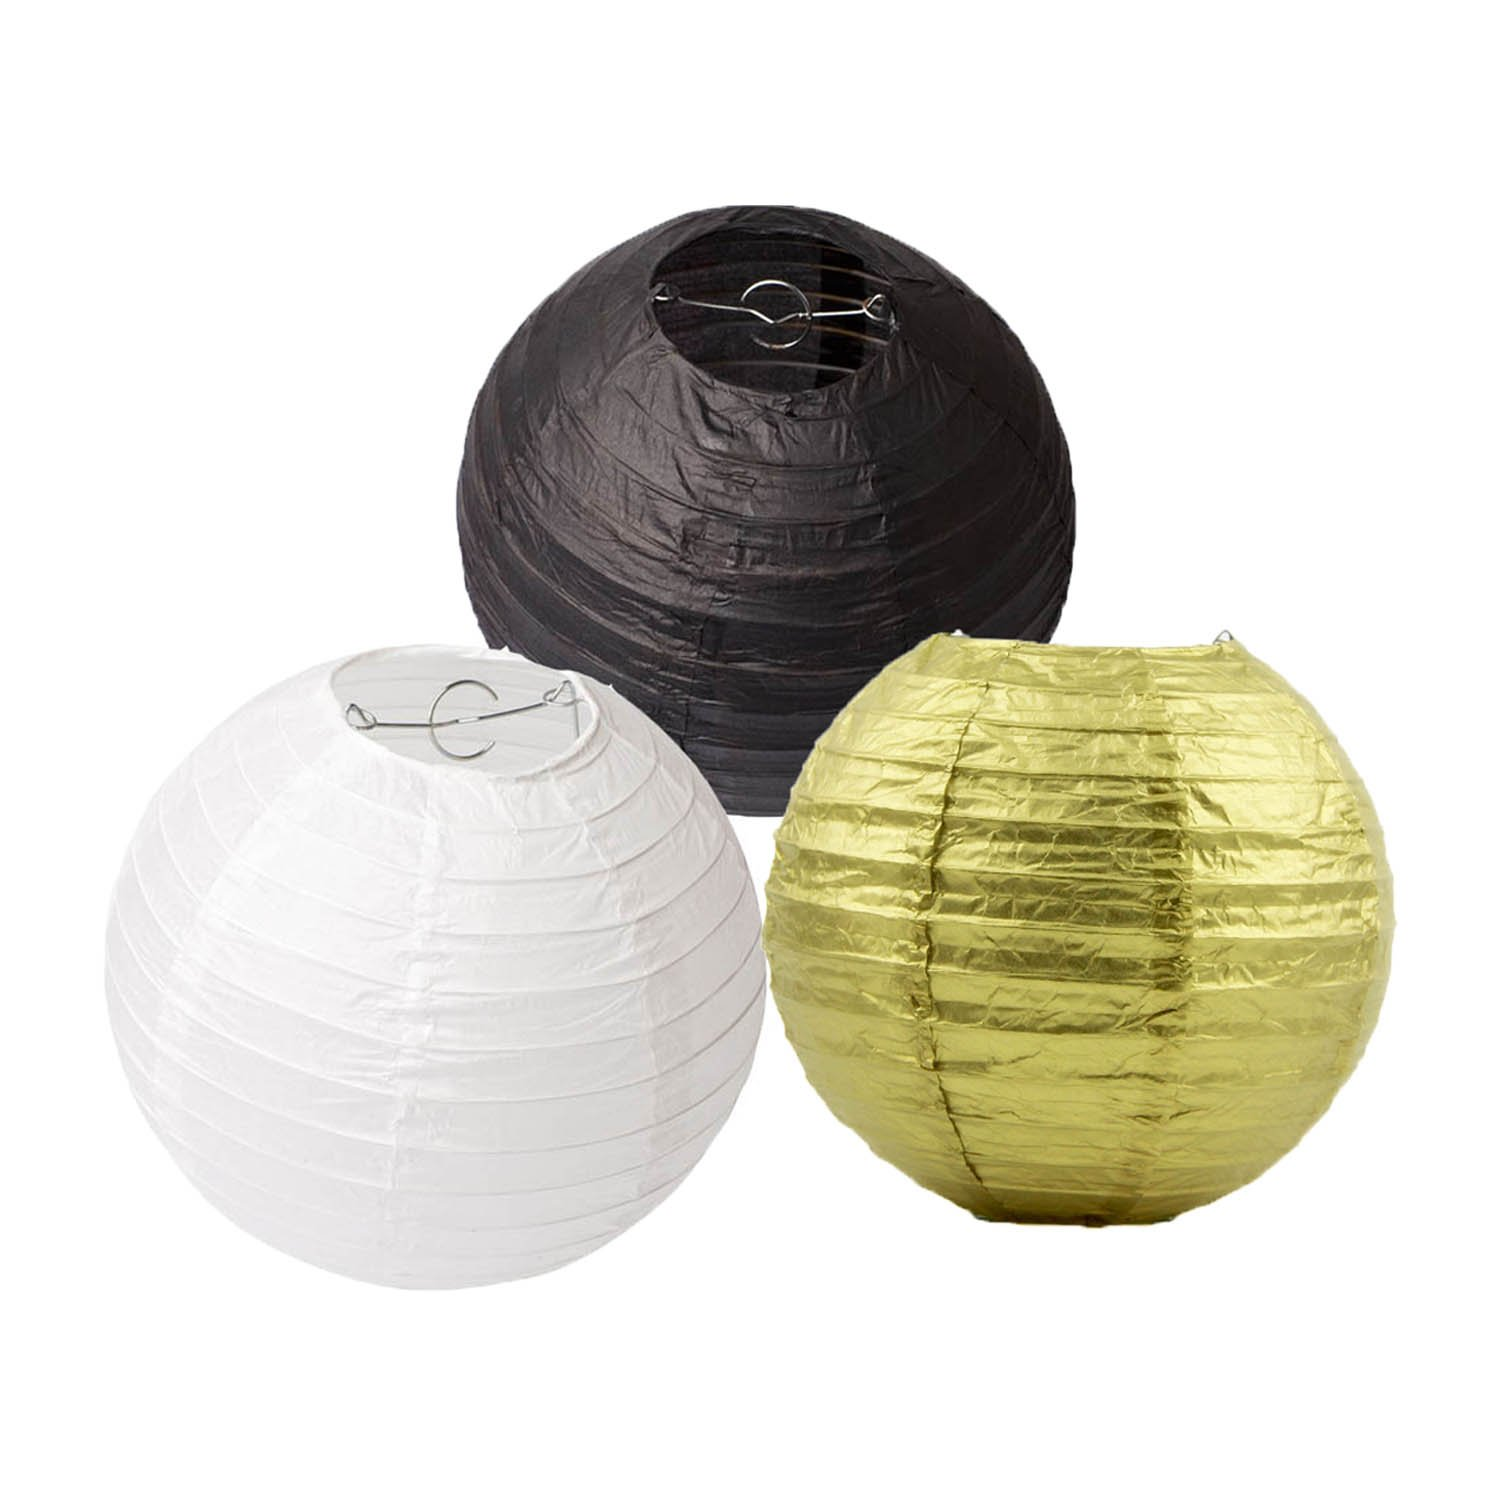 HEARTFEEL 8 inch Pack of 6 Chinese Paper Lanterns Lamp Shade Gold White Black Mixed Colors Wedding Party Decoration Baby Shower Birthday Decoration Round Paper Lantern